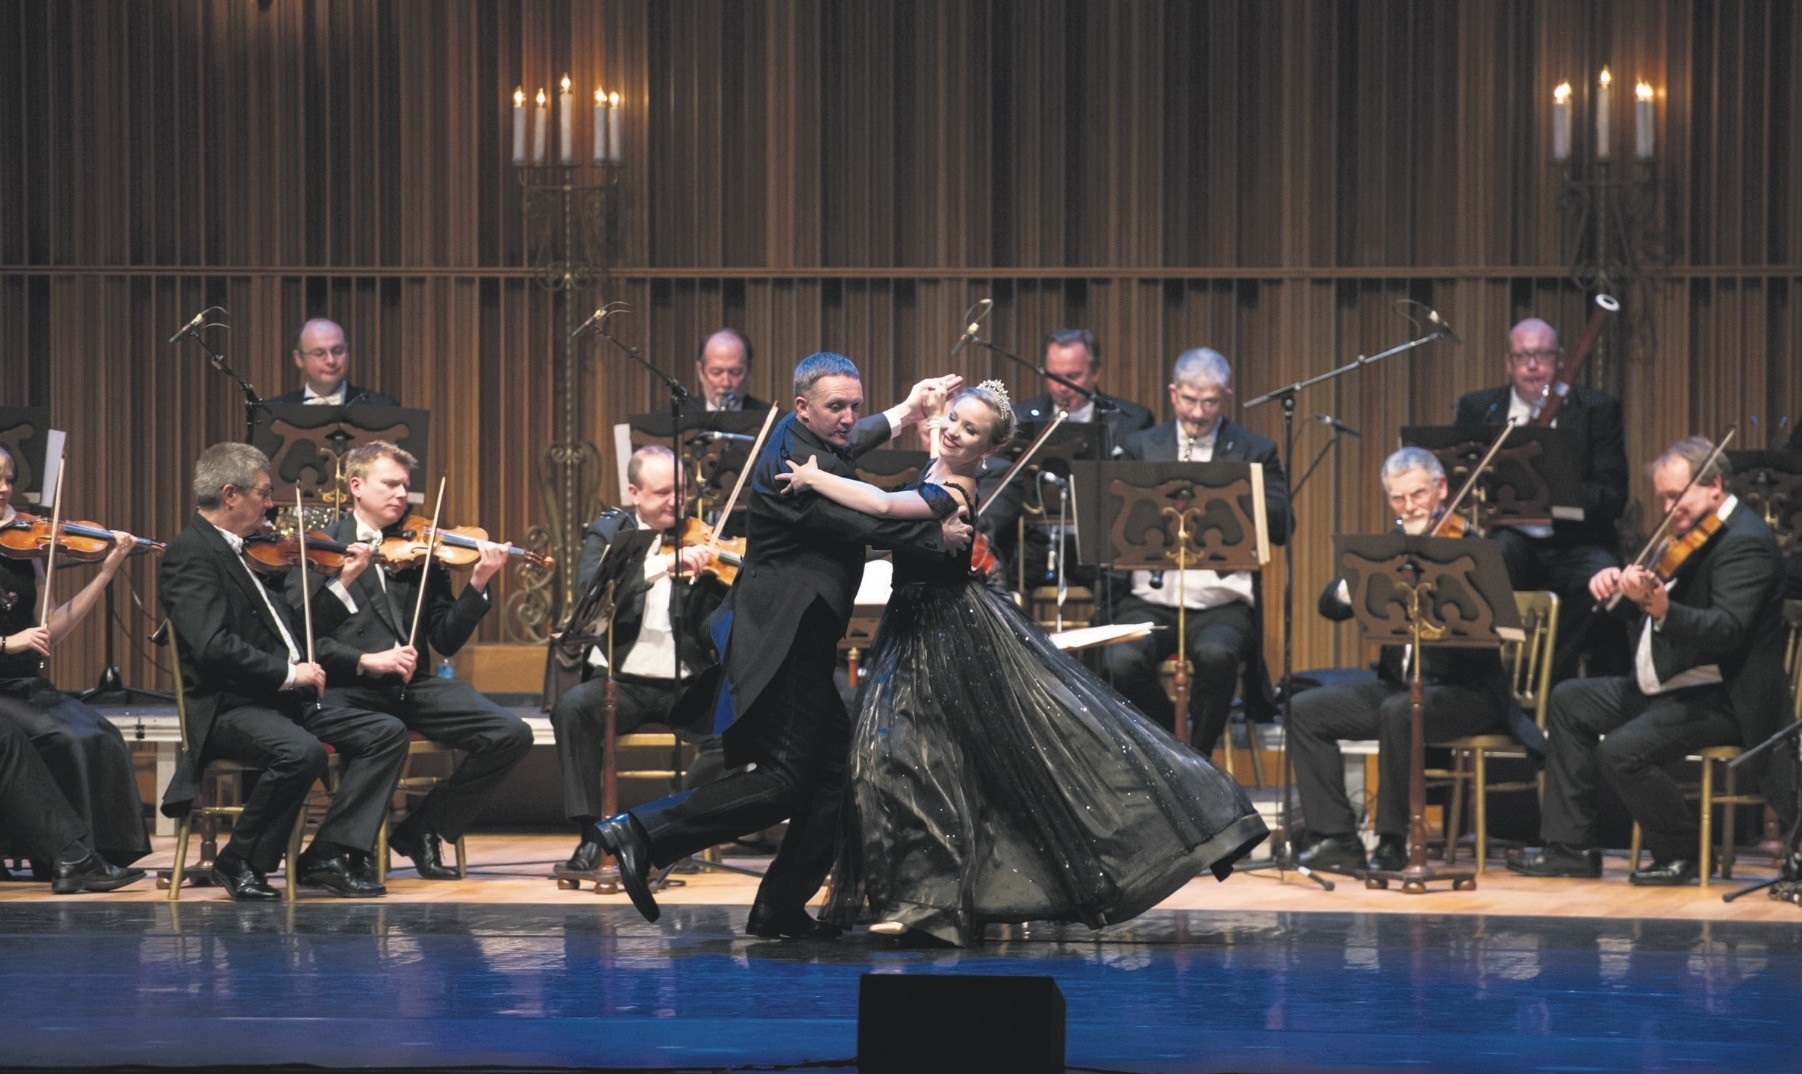 The special new year concert for 2018 will be performed by the Johann Strauss Orchestra, conducted by John Rigby on Jan. 4.